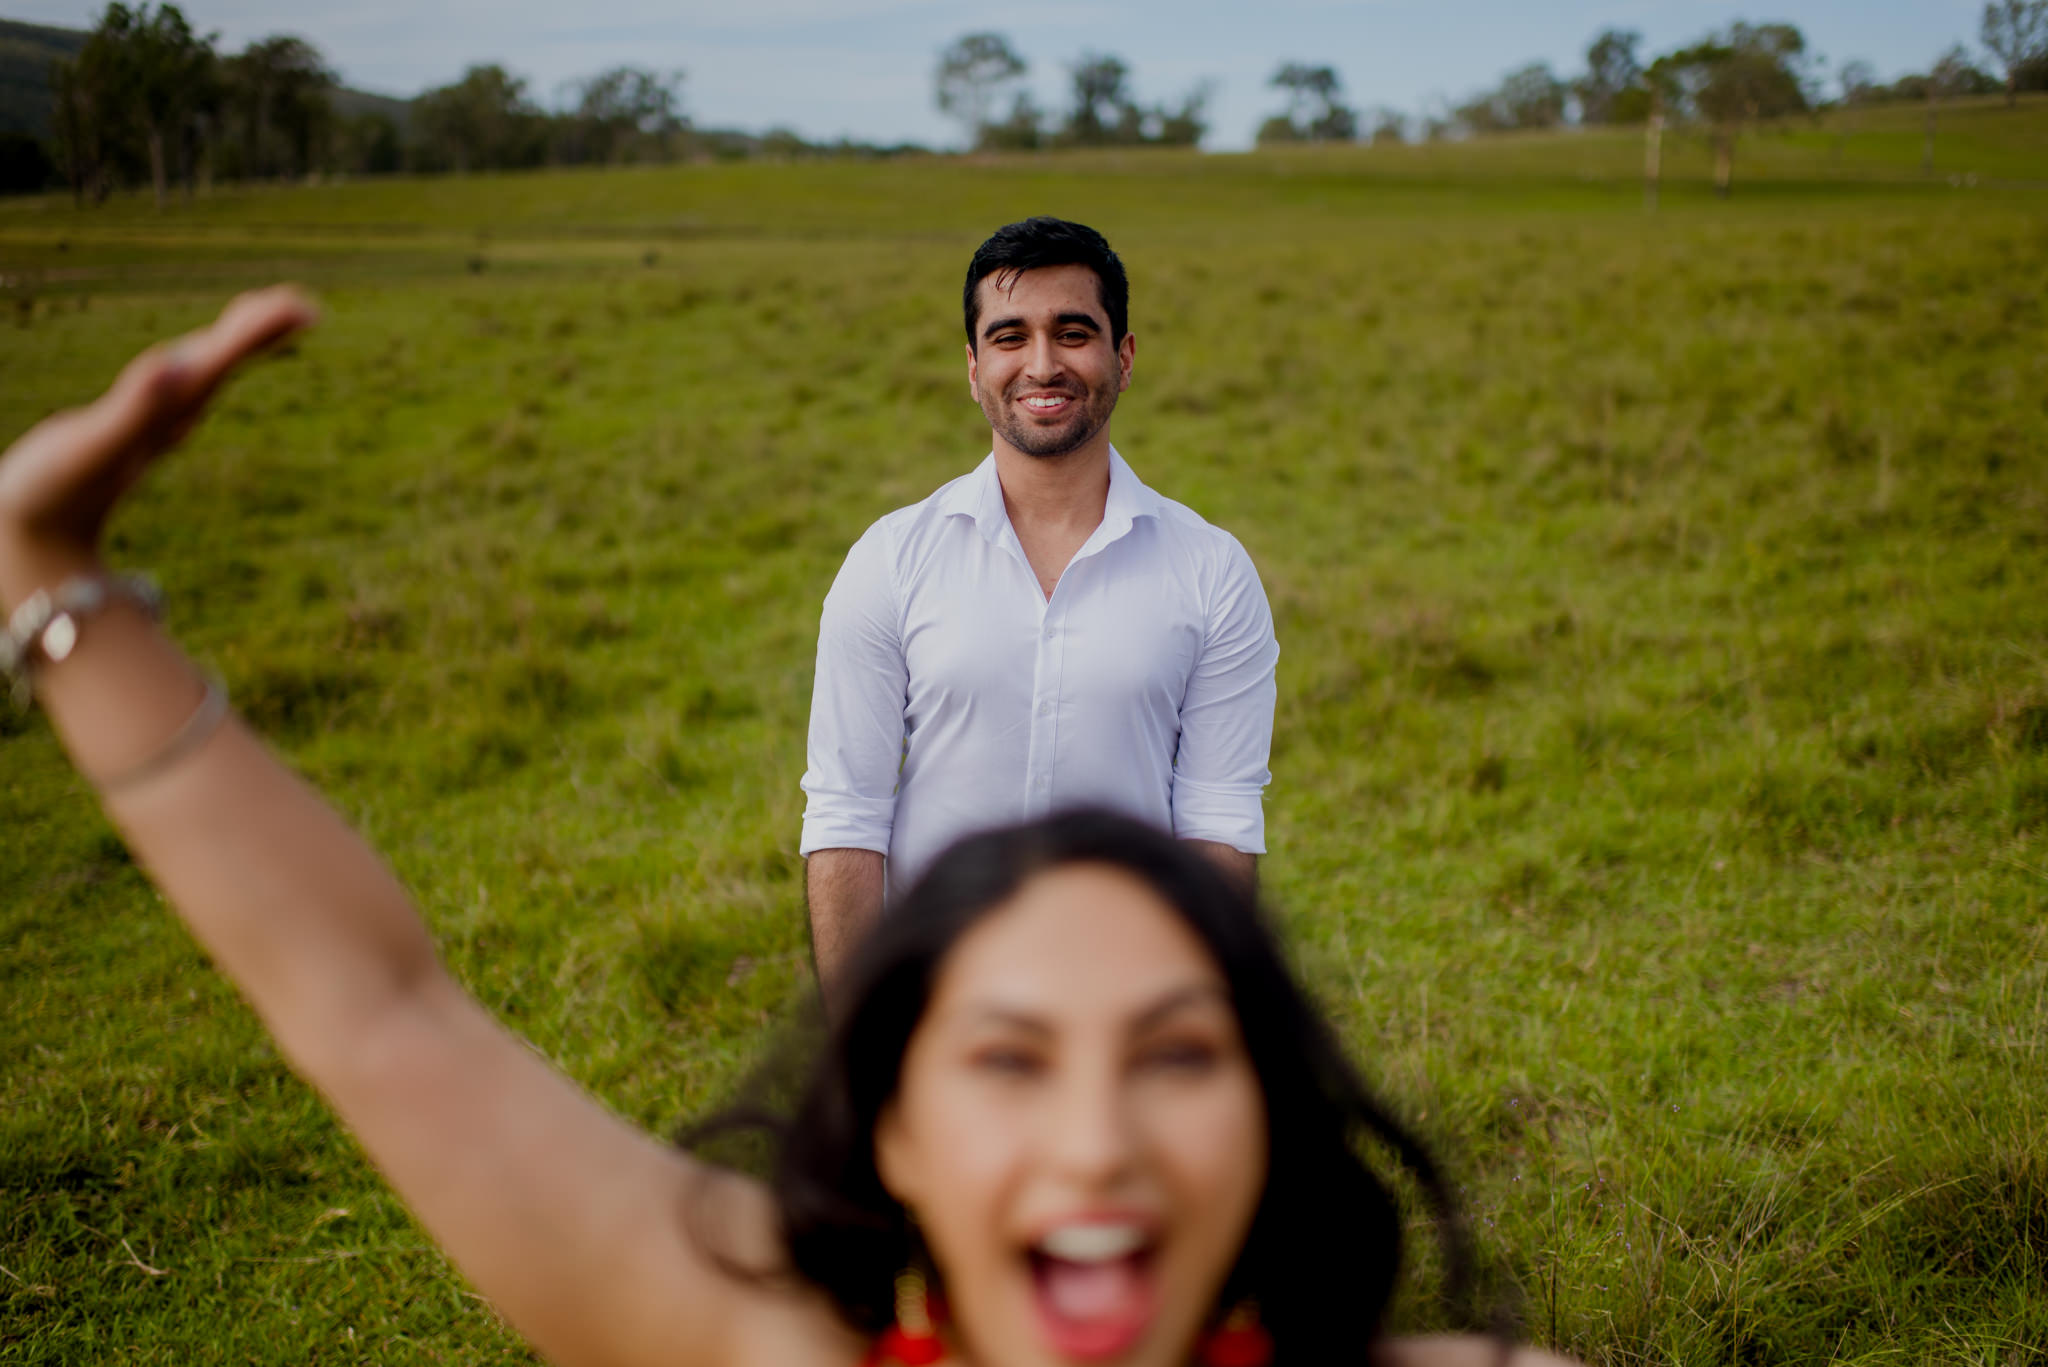 Boy laughs as his girlfriend photobombs the photo in the foreground